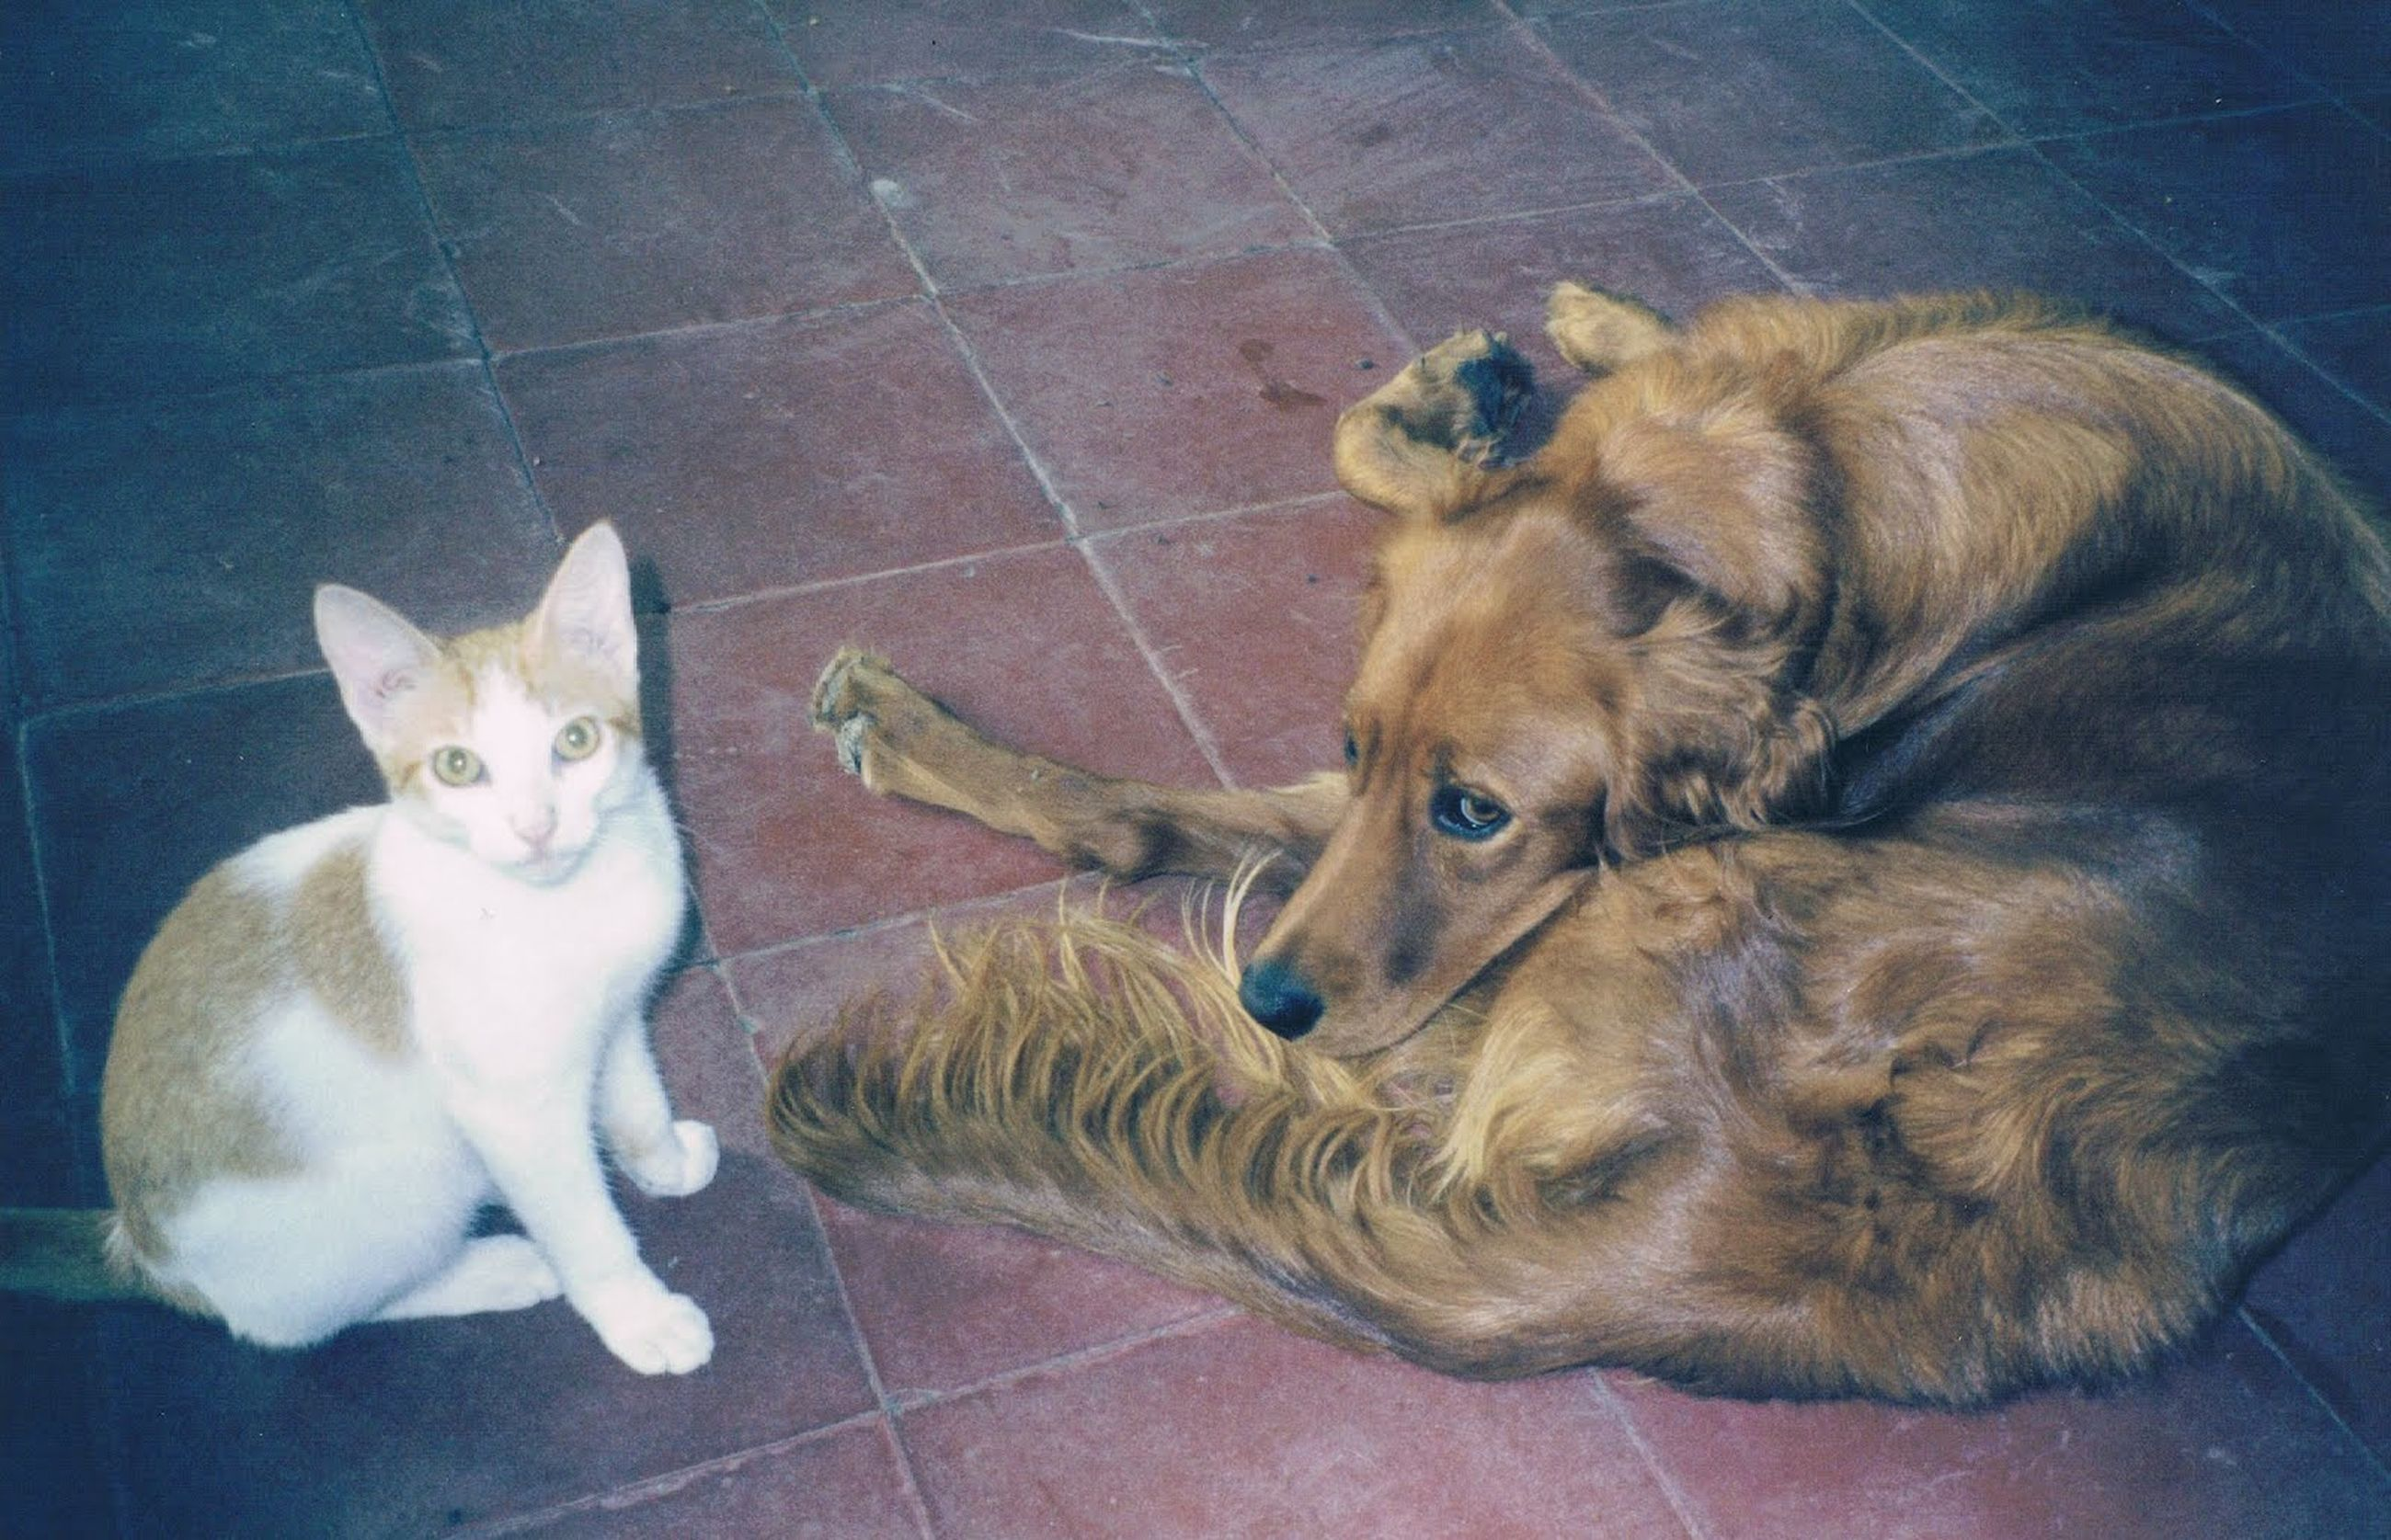 pets, animal themes, domestic animals, mammal, one animal, indoors, portrait, looking at camera, relaxation, two animals, domestic cat, cat, lying down, dog, resting, no people, feline, full length, sitting, high angle view